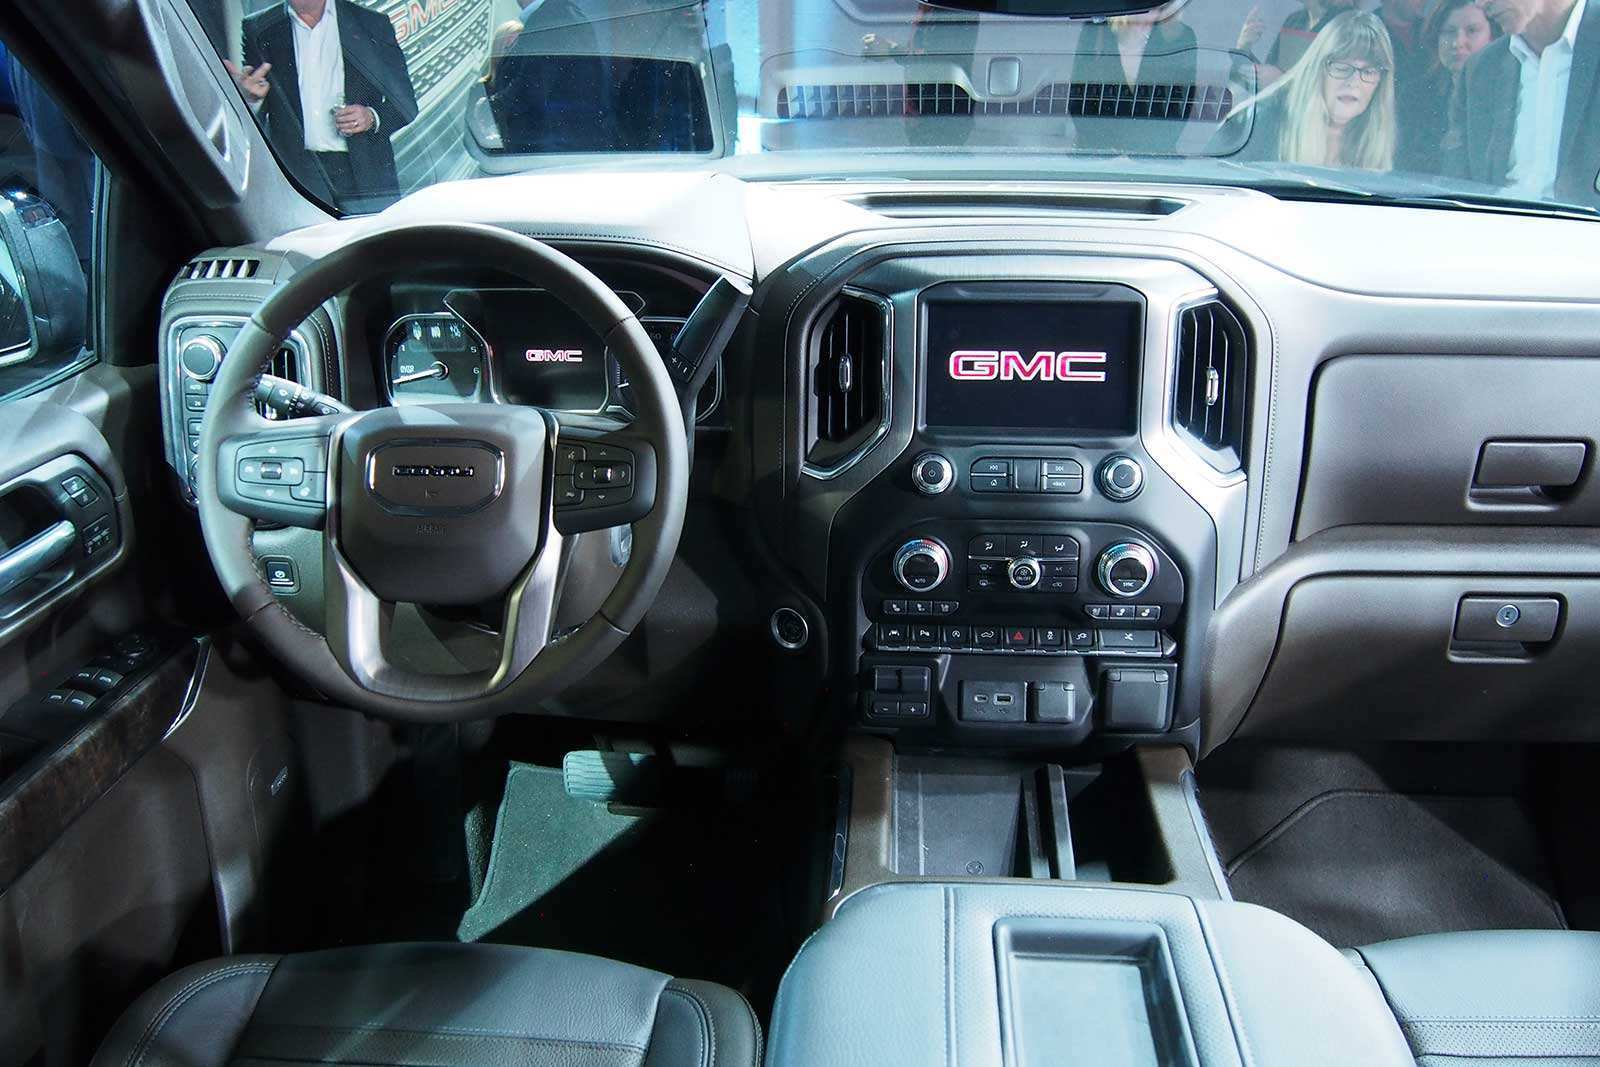 42 New 2019 Gmc 1500 Interior New Review for 2019 Gmc 1500 Interior